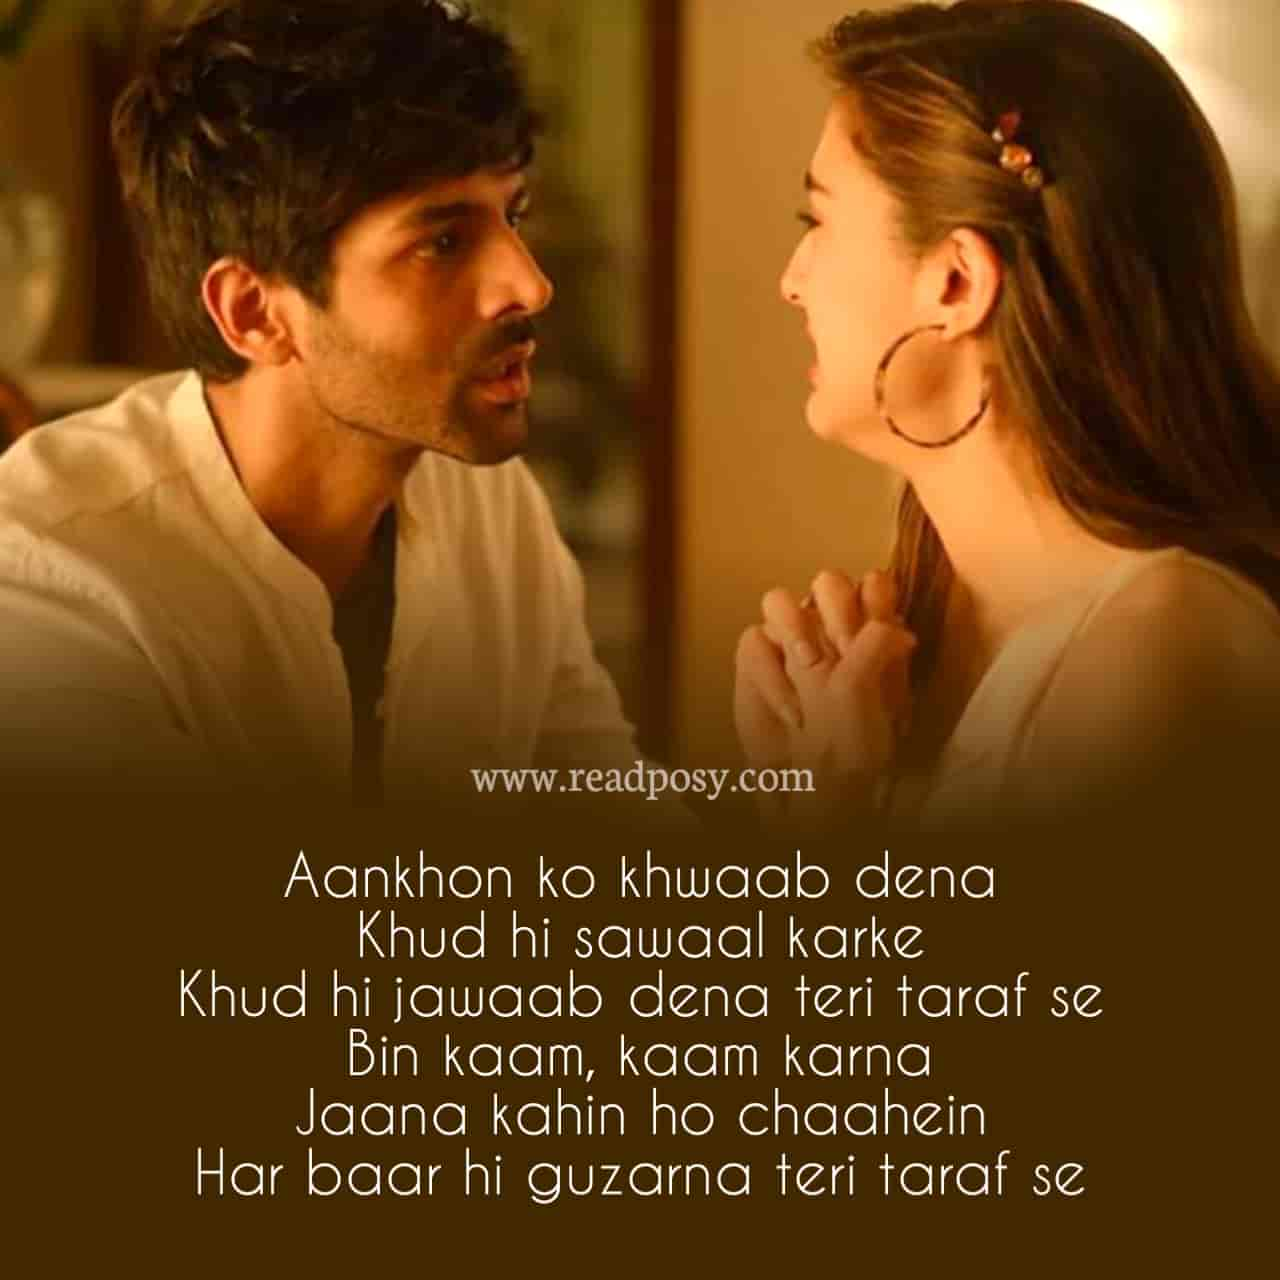 Shayad Love Song Lyrics with Image, Sung By Arijit Singh from the movie Love Aaj Kal.